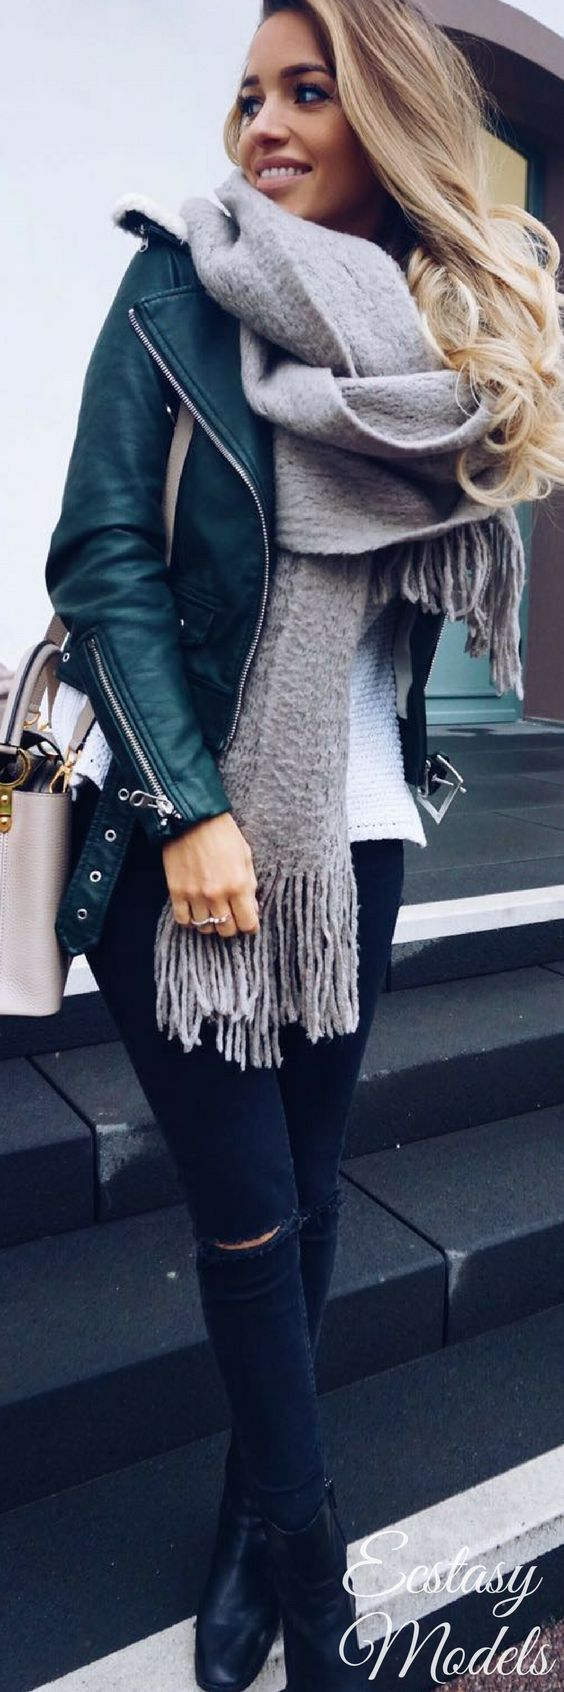 Cozy Green Leather Jacket // Fashion Look by Luana Silva